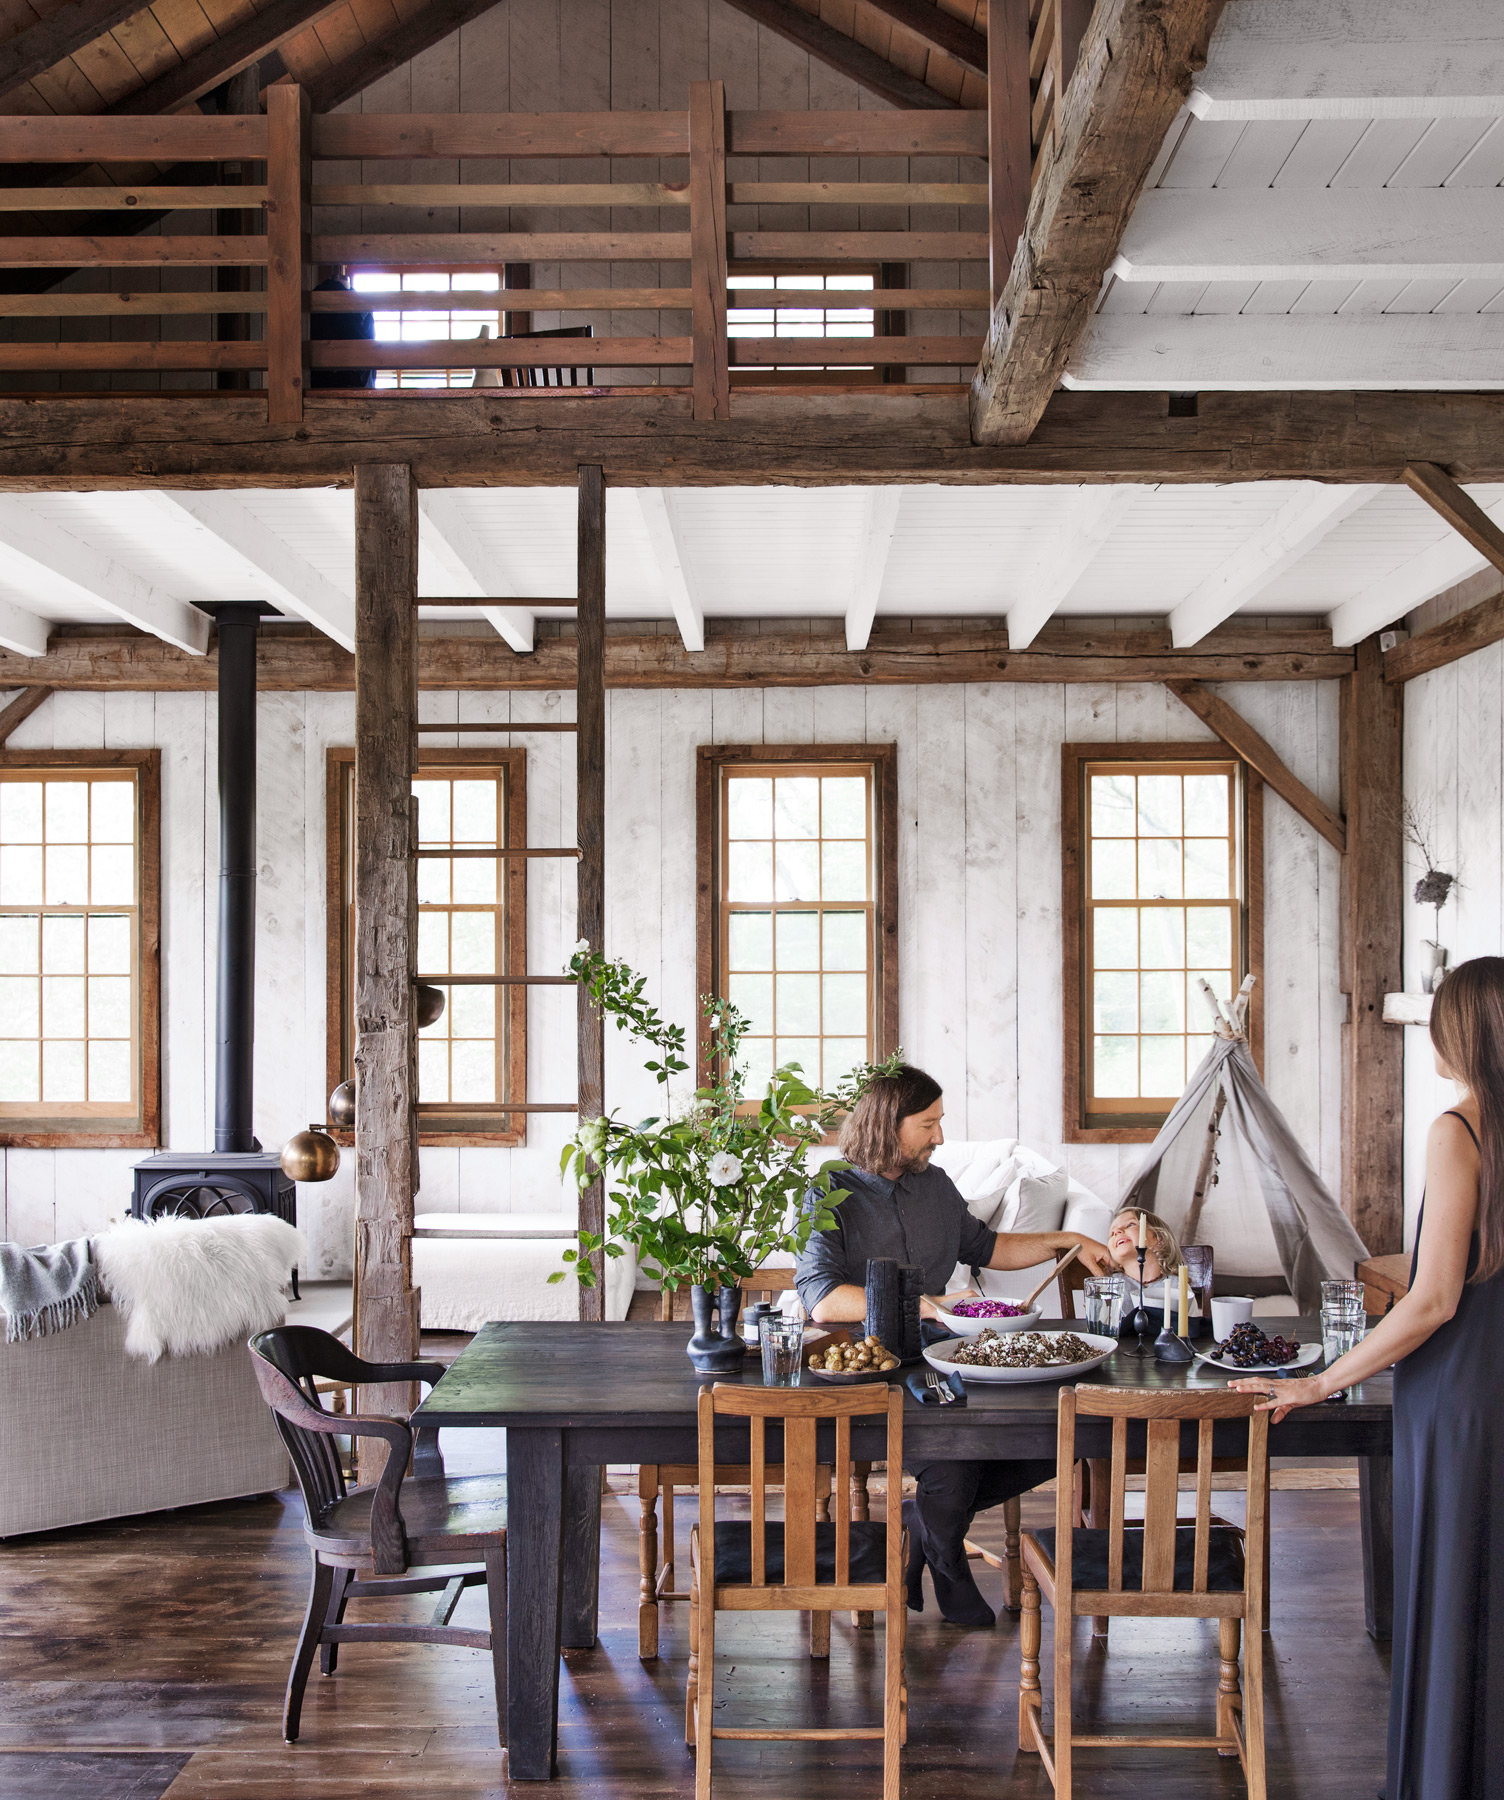 rustic dining room with ladder to loft above